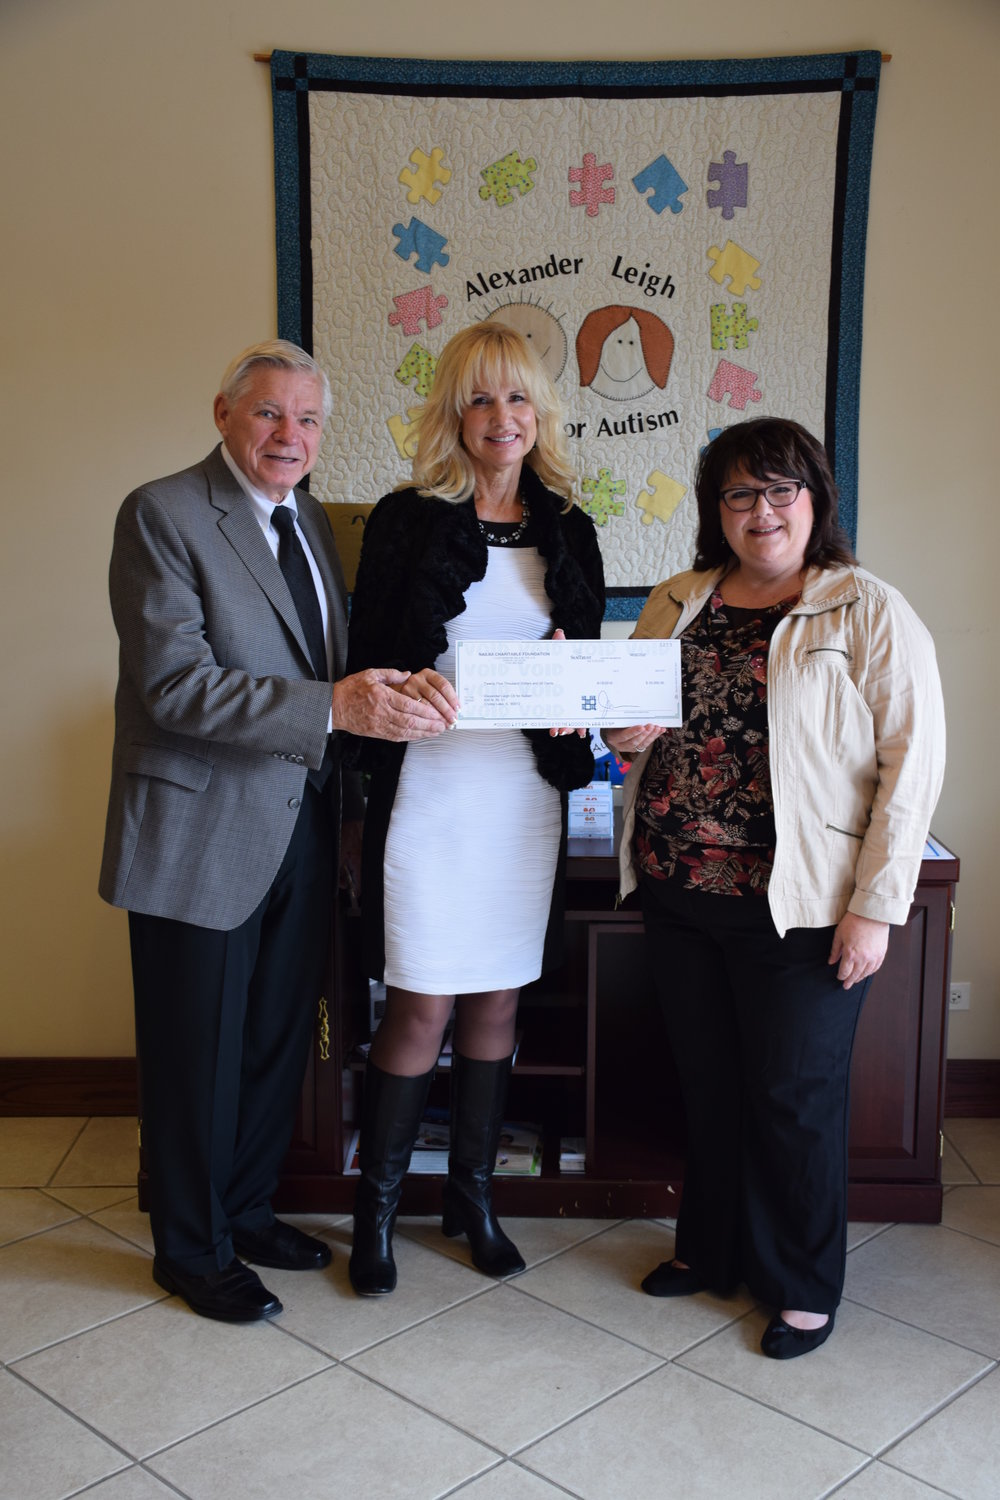 Kelly Weaver (right) with Bill and Susan Bovinette of Life Guys Inc., presenting the NAILBA foundation check for $25,000.